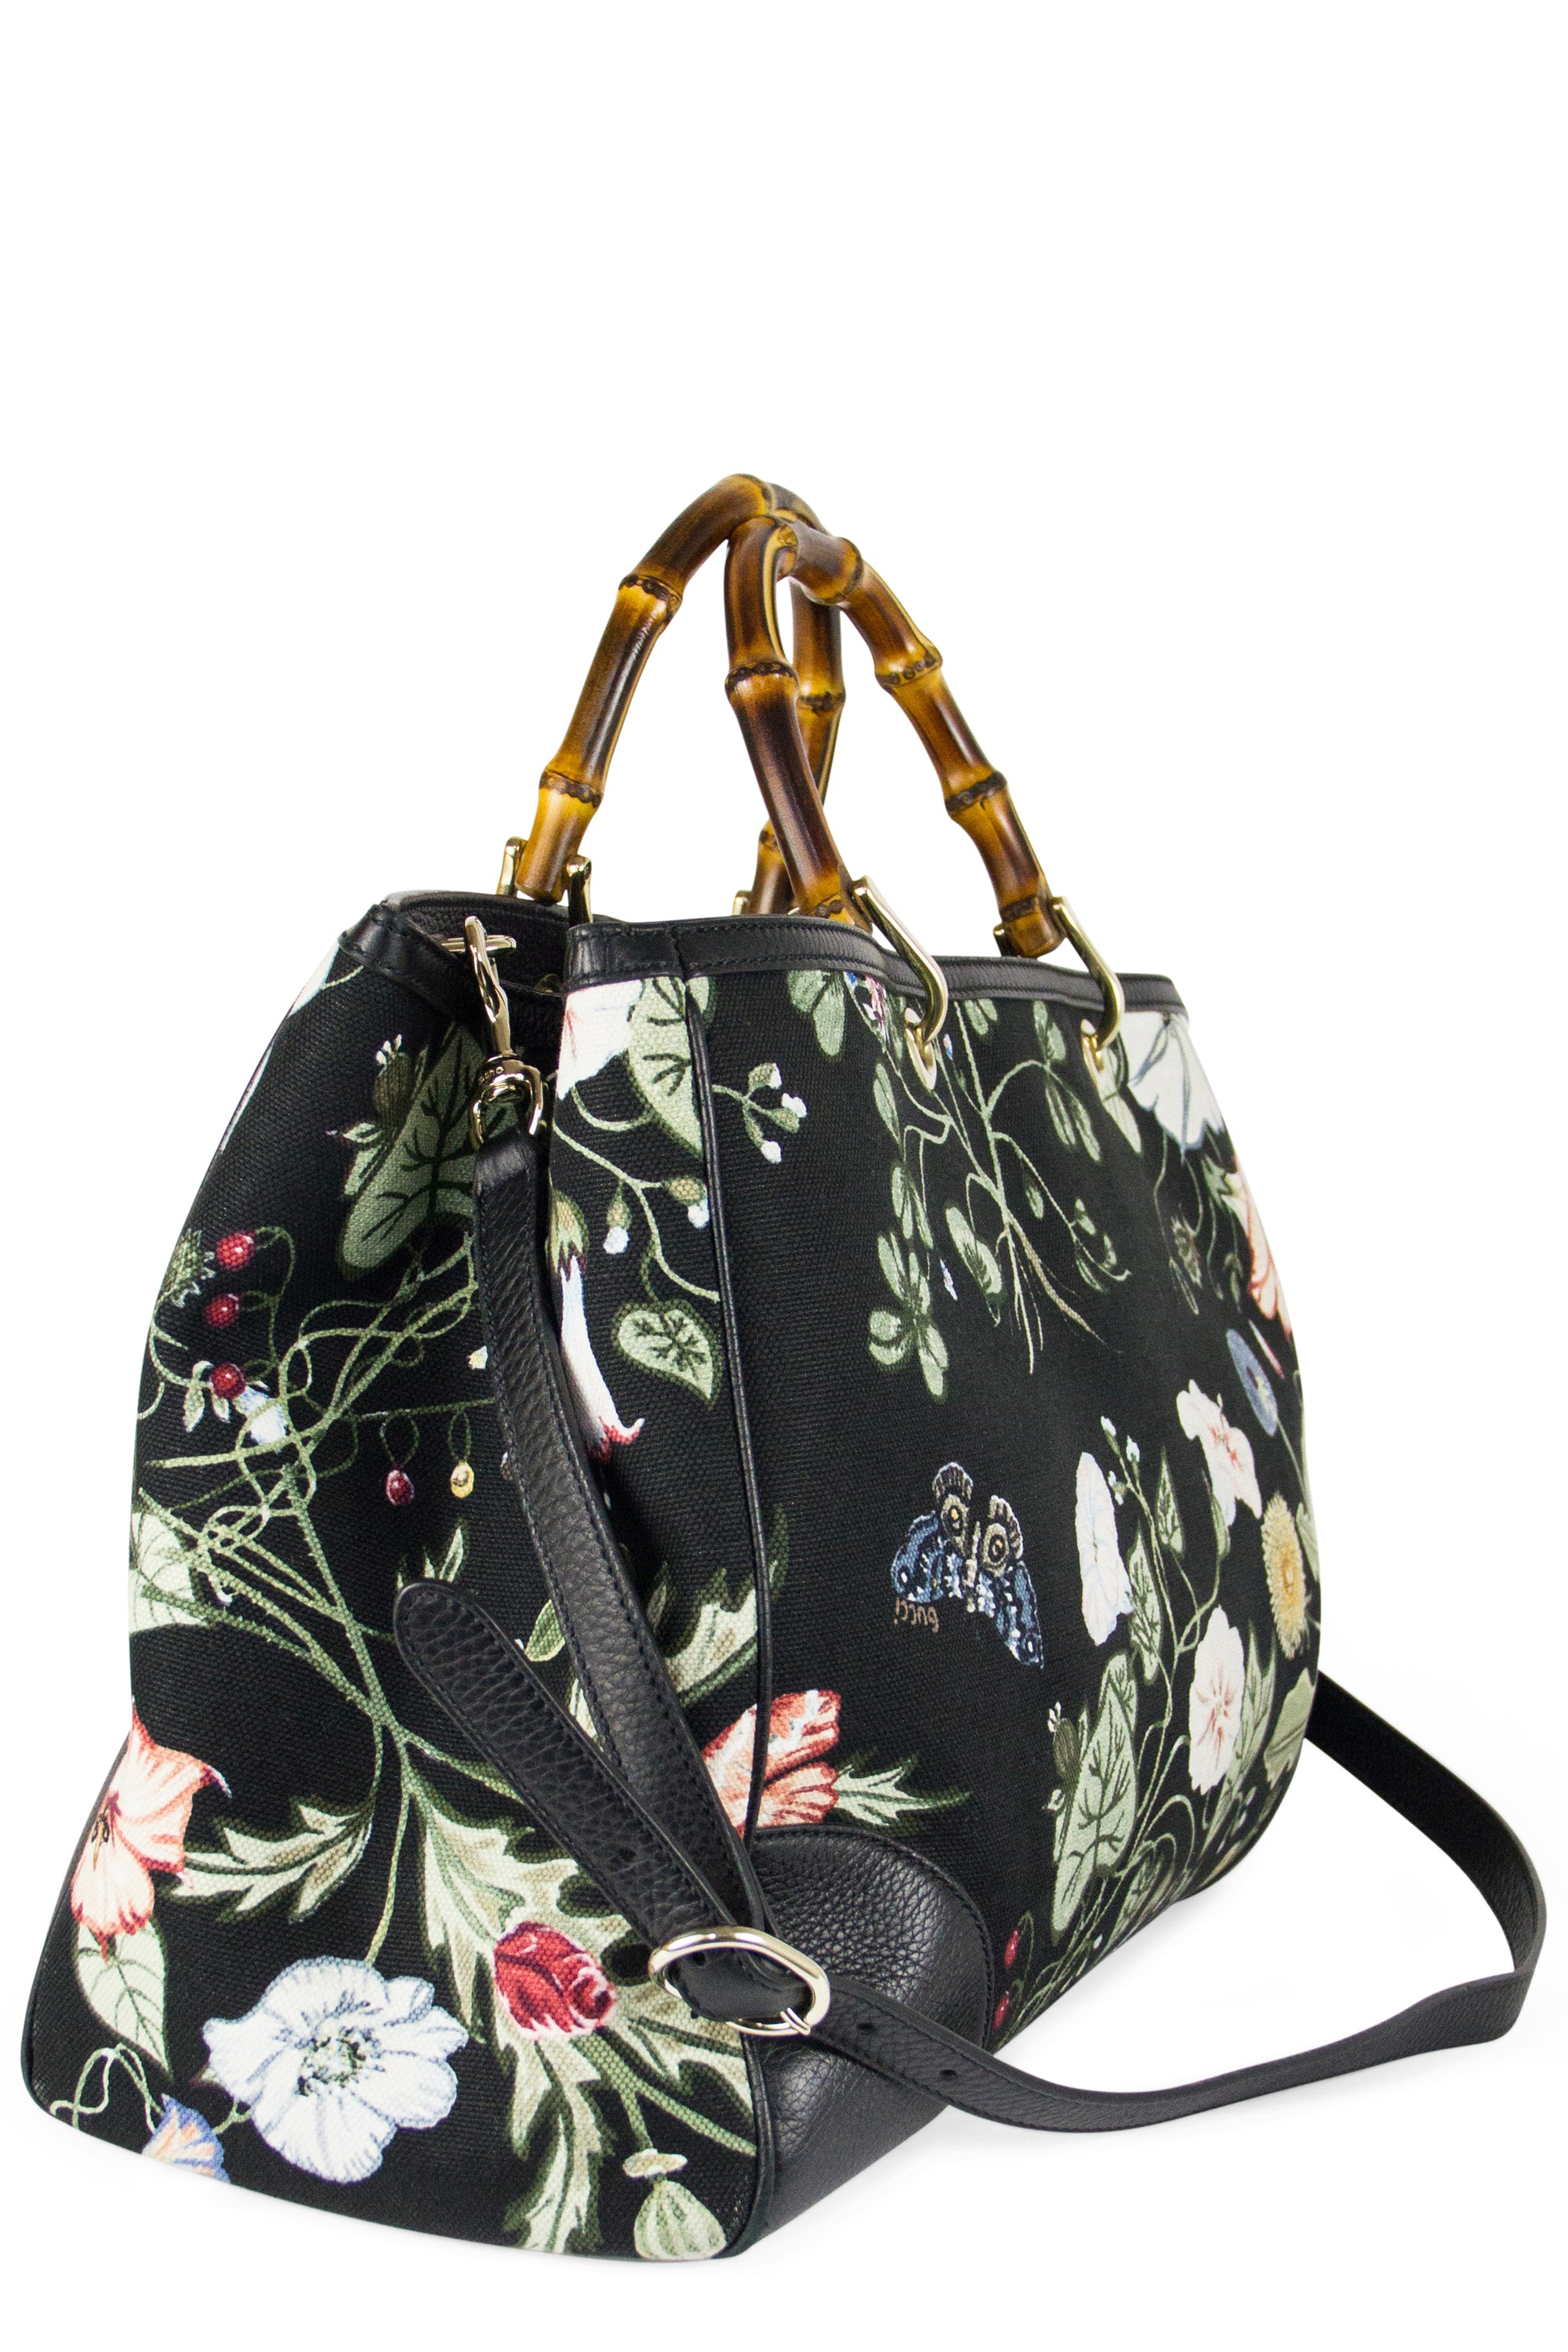 GUCCI Bamboo Floral Tote